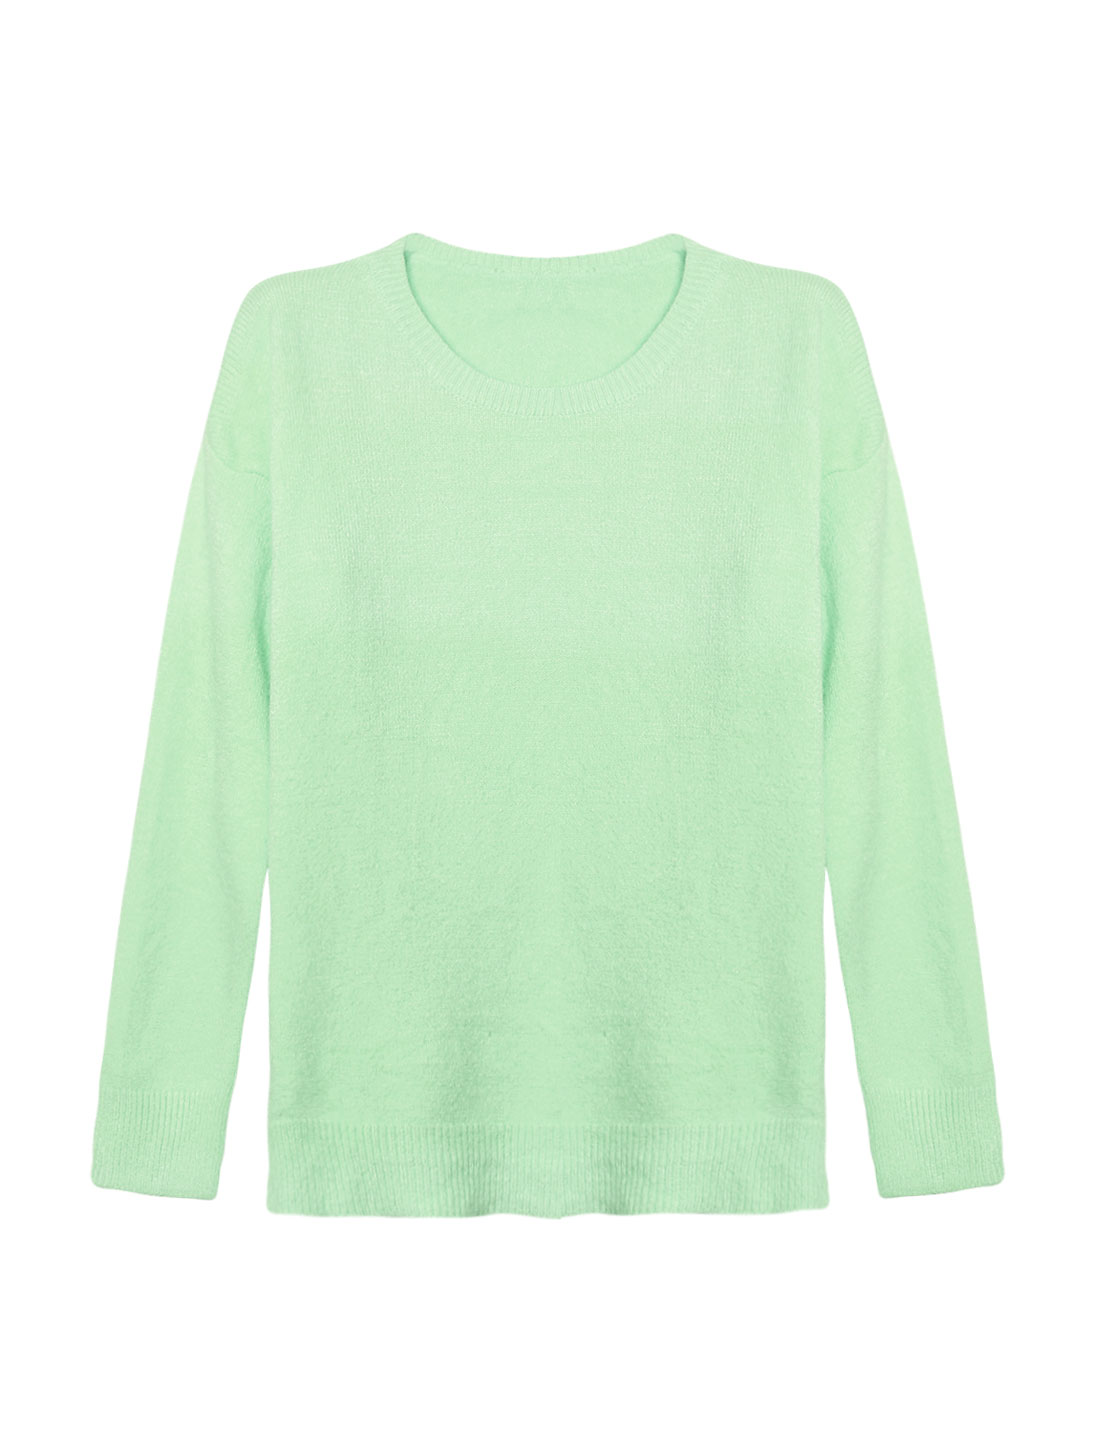 Woman Crew Neck Dolman Sleeves Ribbed Trim Knit Shirt Green XS